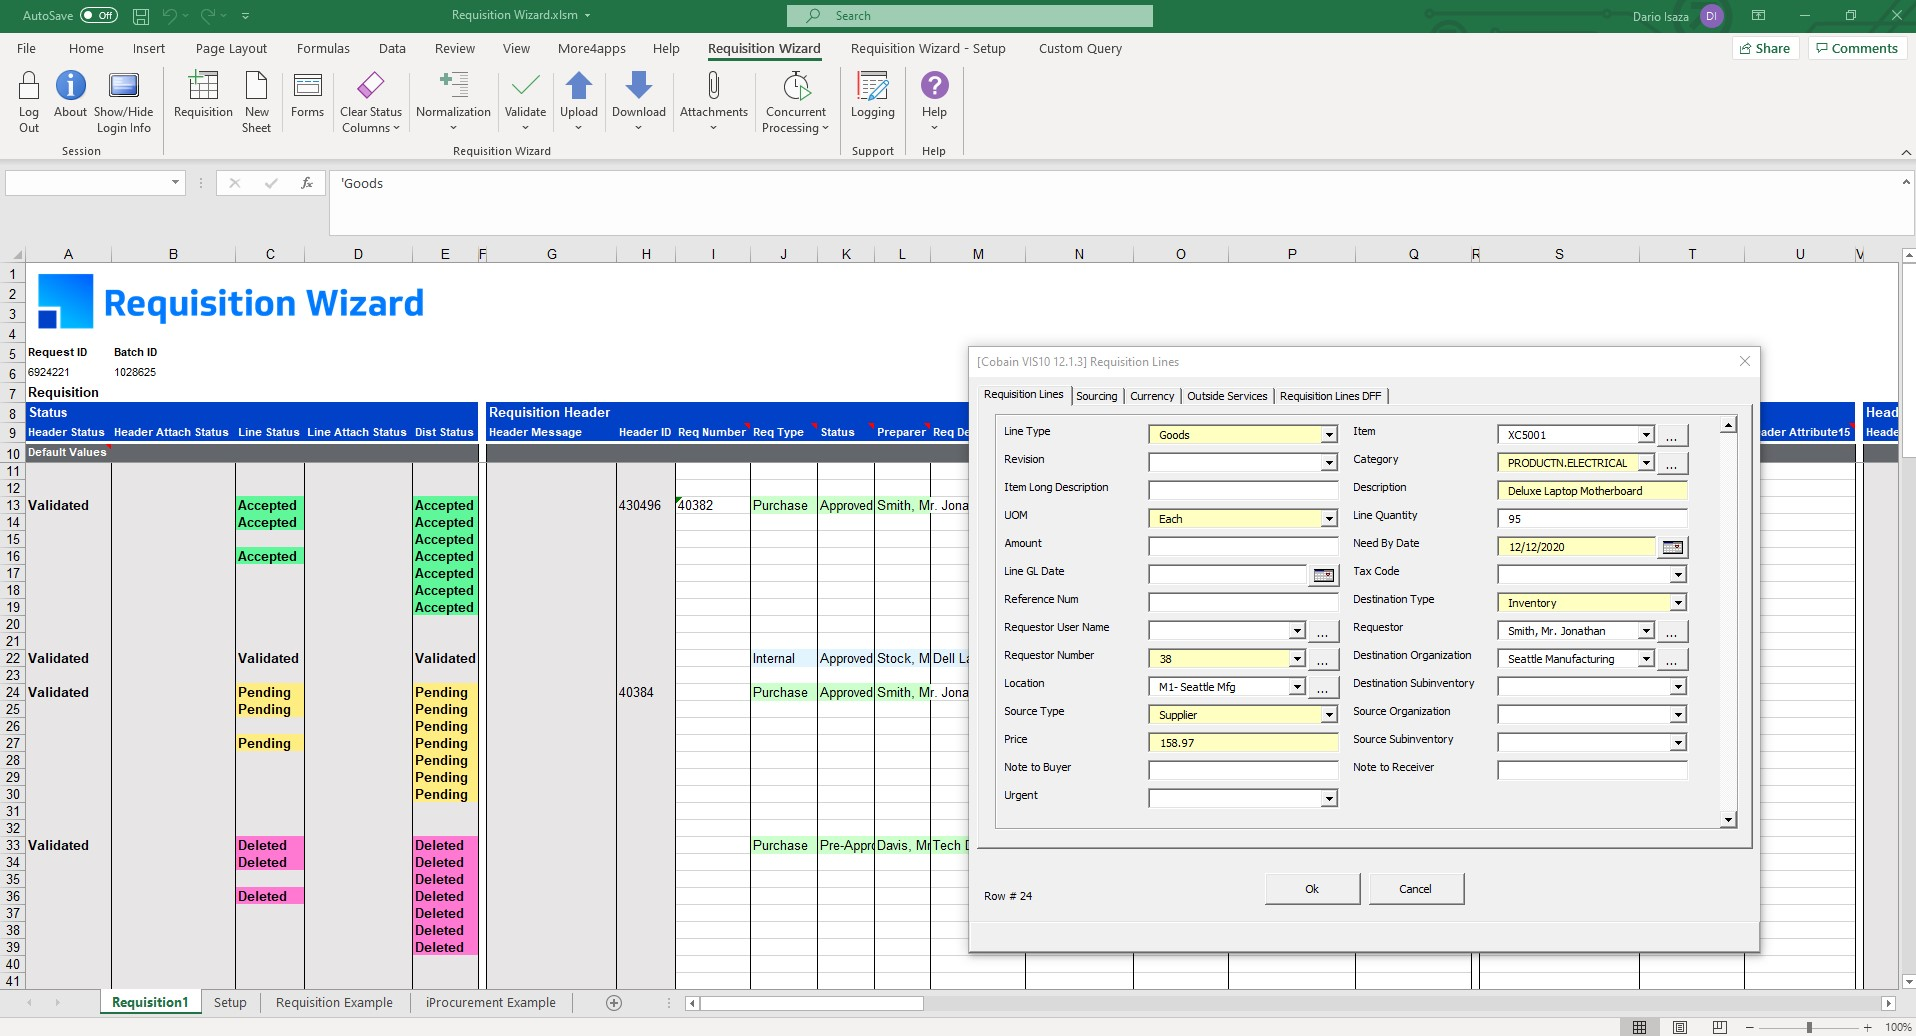 Product Screenshot More4apps Requisition Wizard for Oracle E-Business Suite